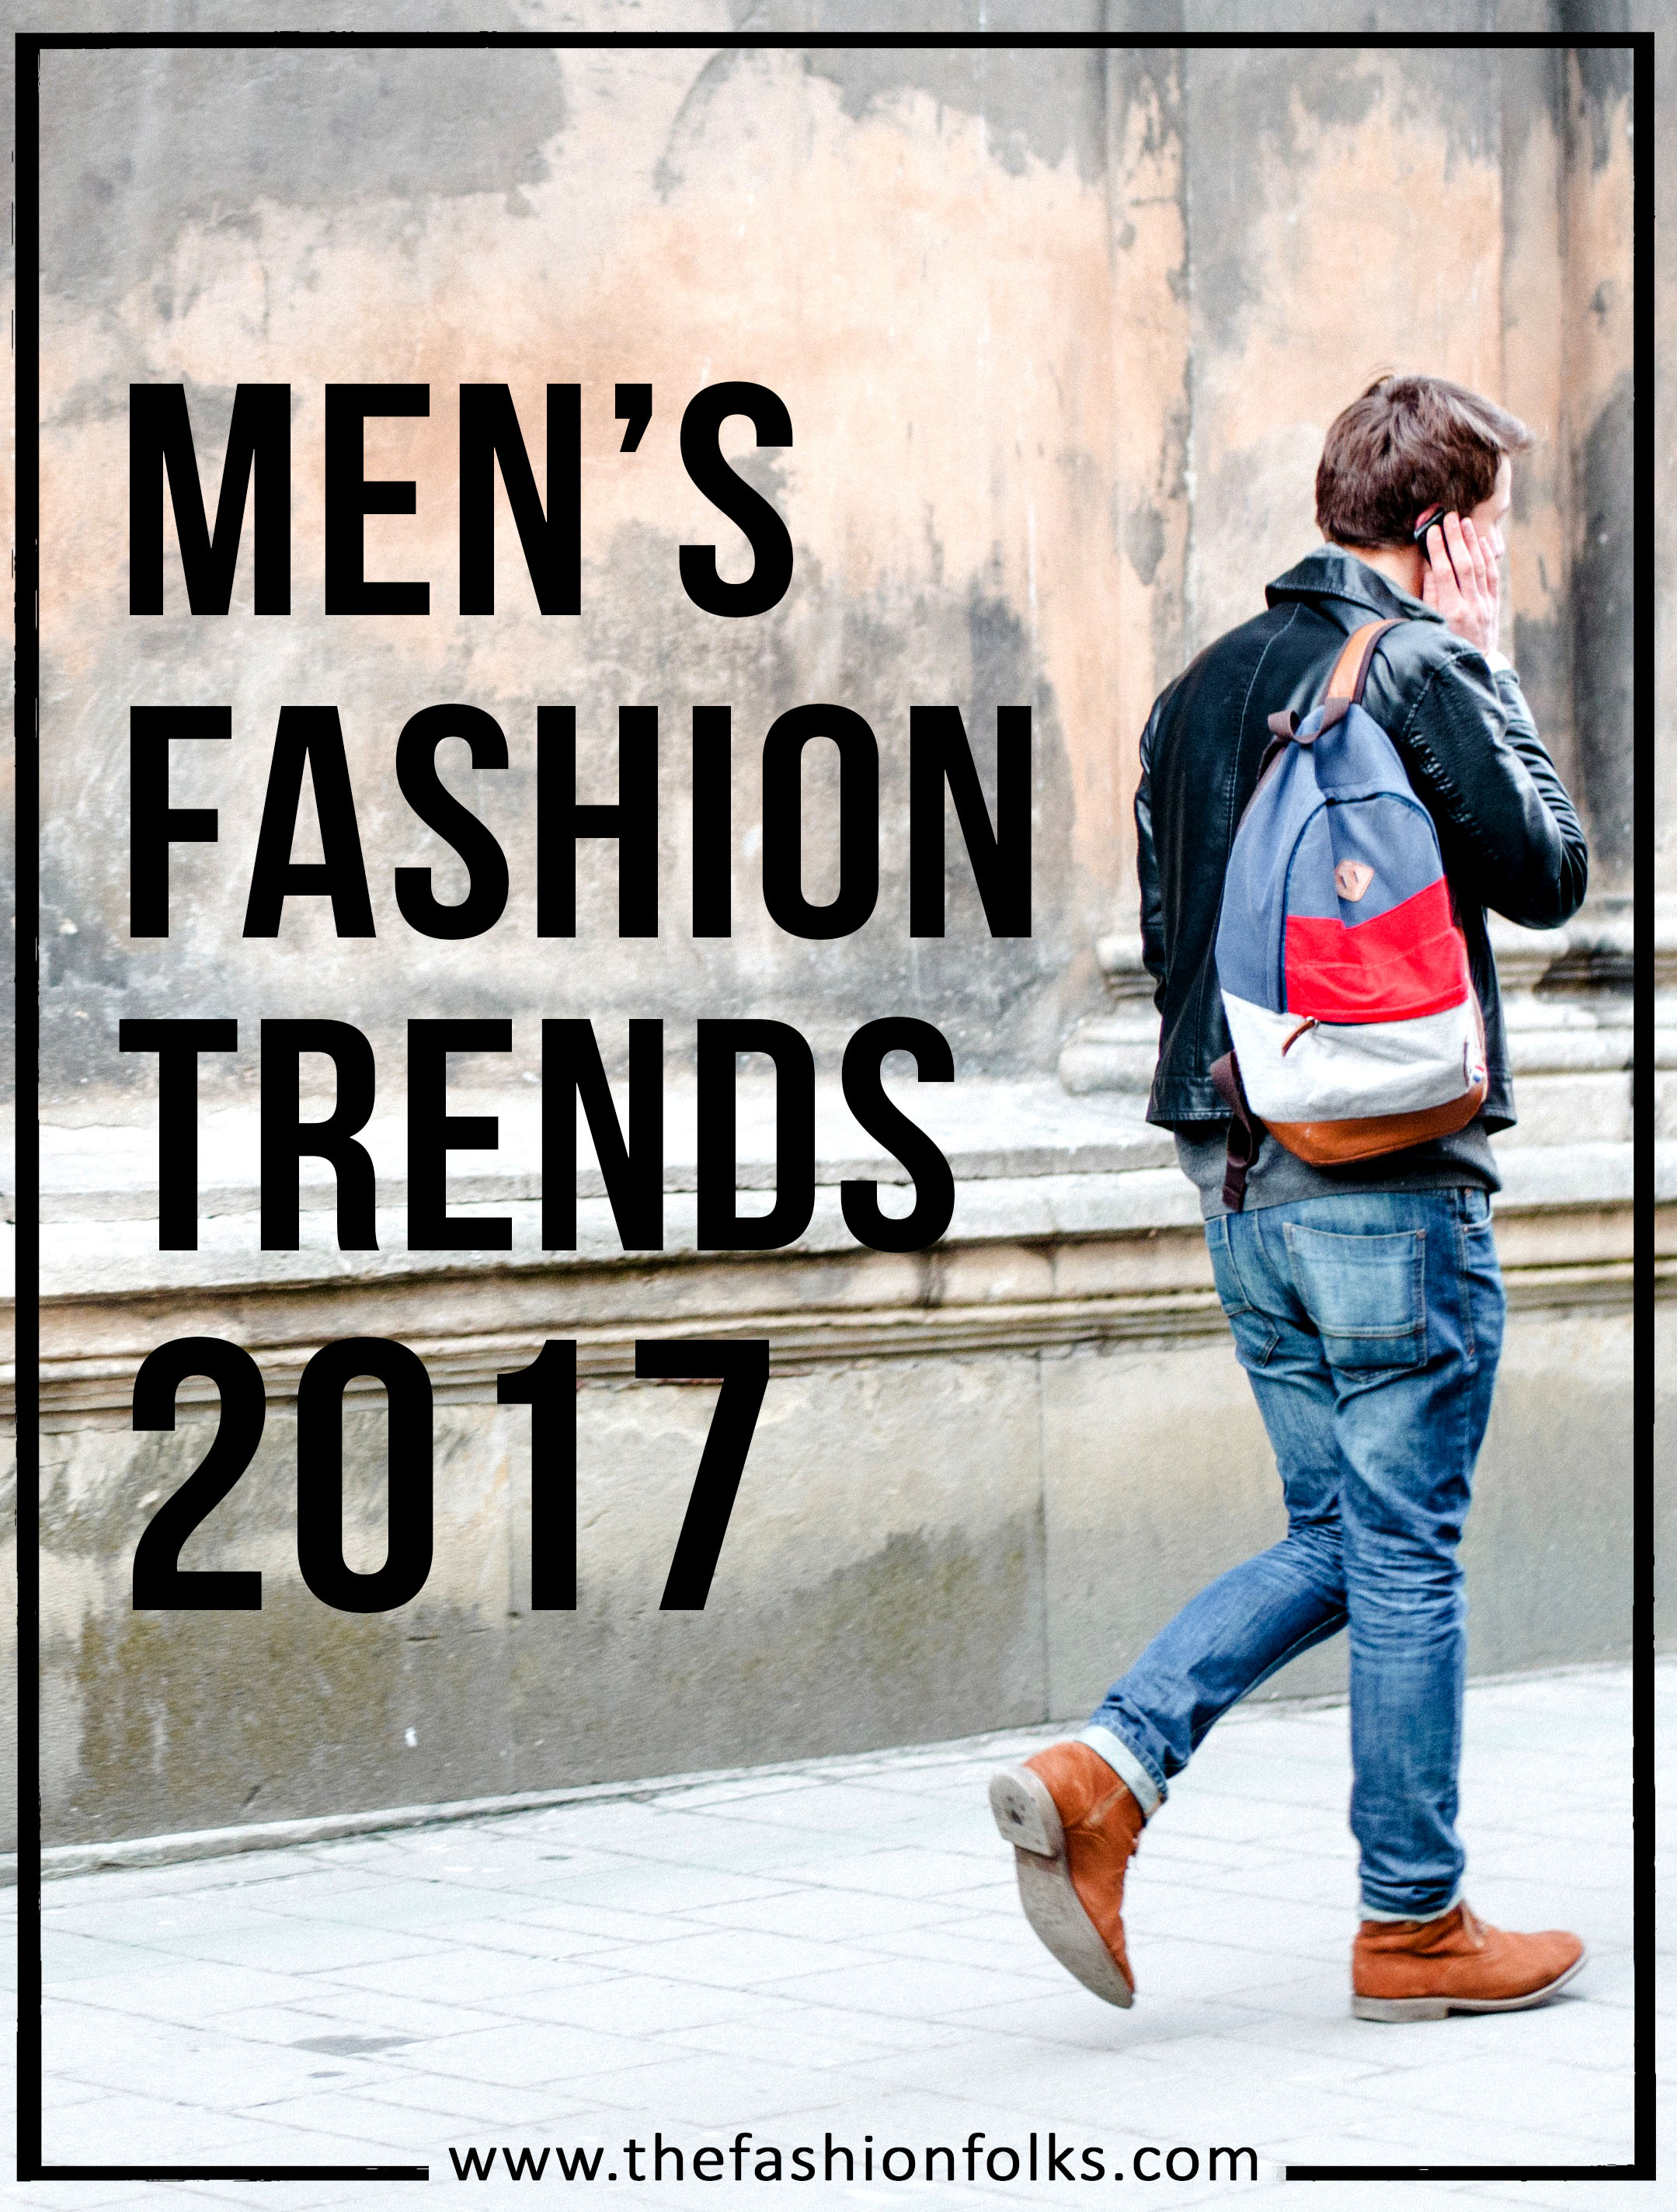 Men's Fashion Trends 2017 Summer/Spring - 1980s fashion, Monochrome Outfits, Street Style, Statement Jackets and Tied Jacket Around The Waist | The Fashion Folks